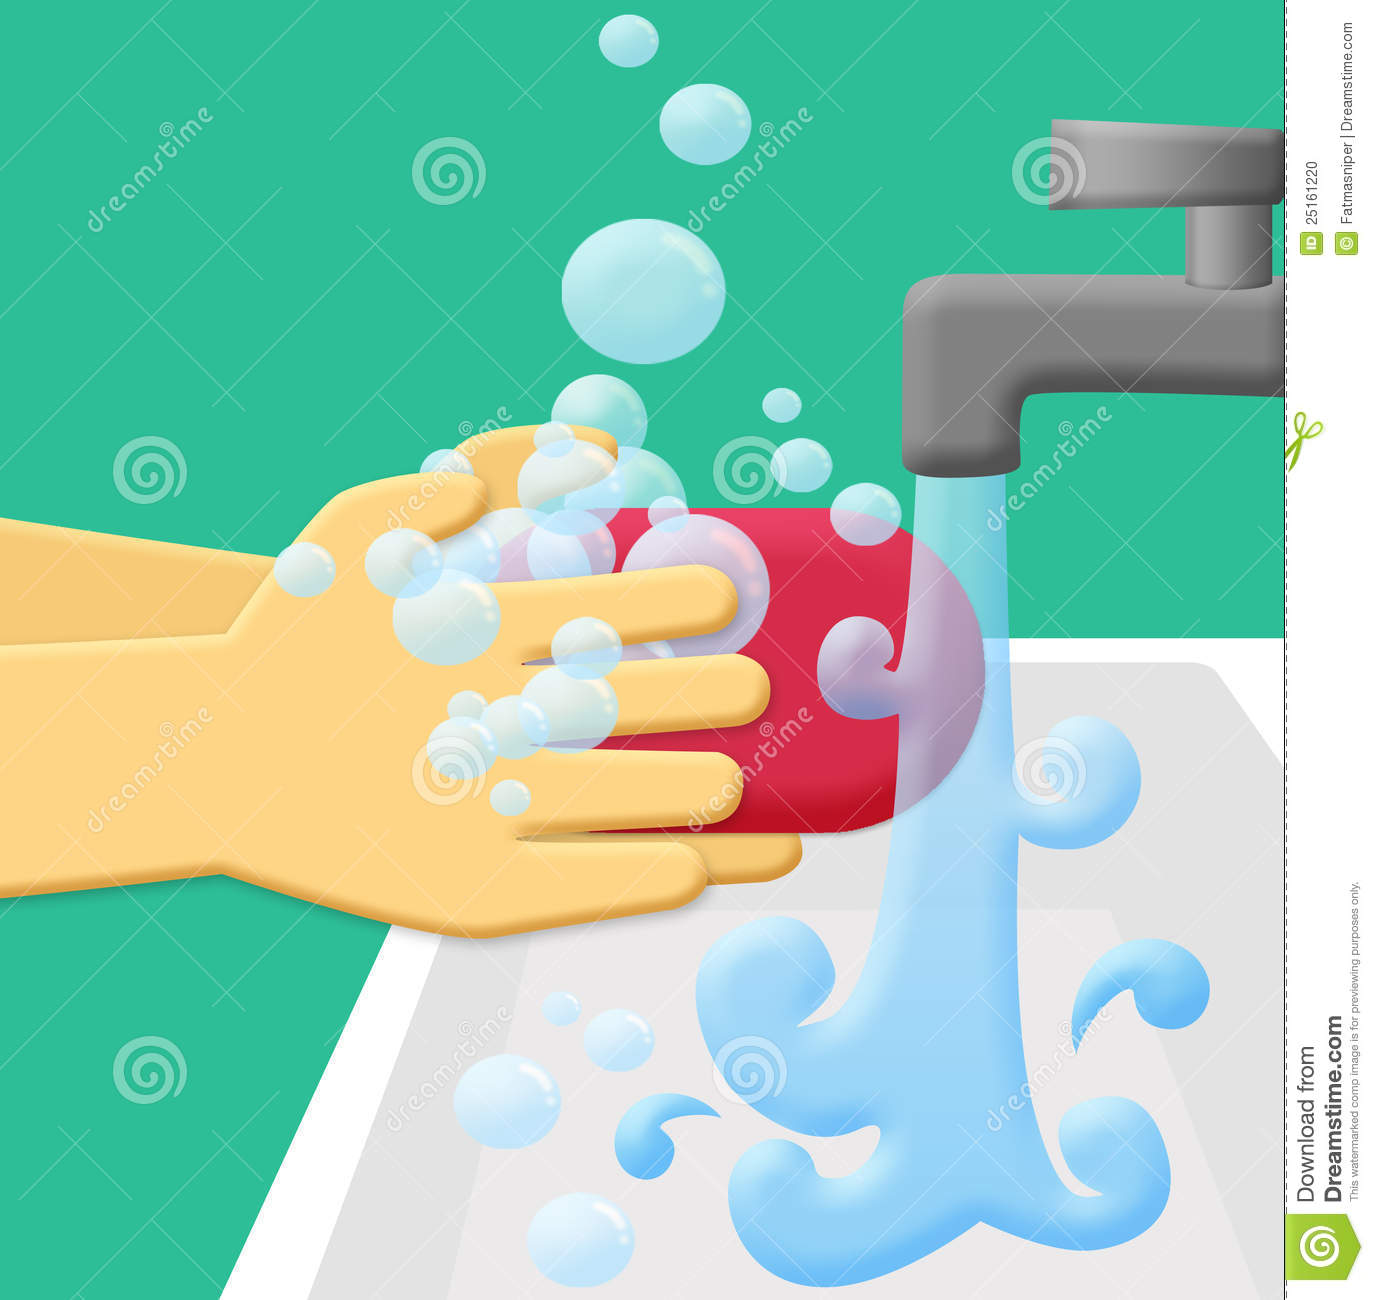 Wash Hands Using Soap And Rinse With Running Water